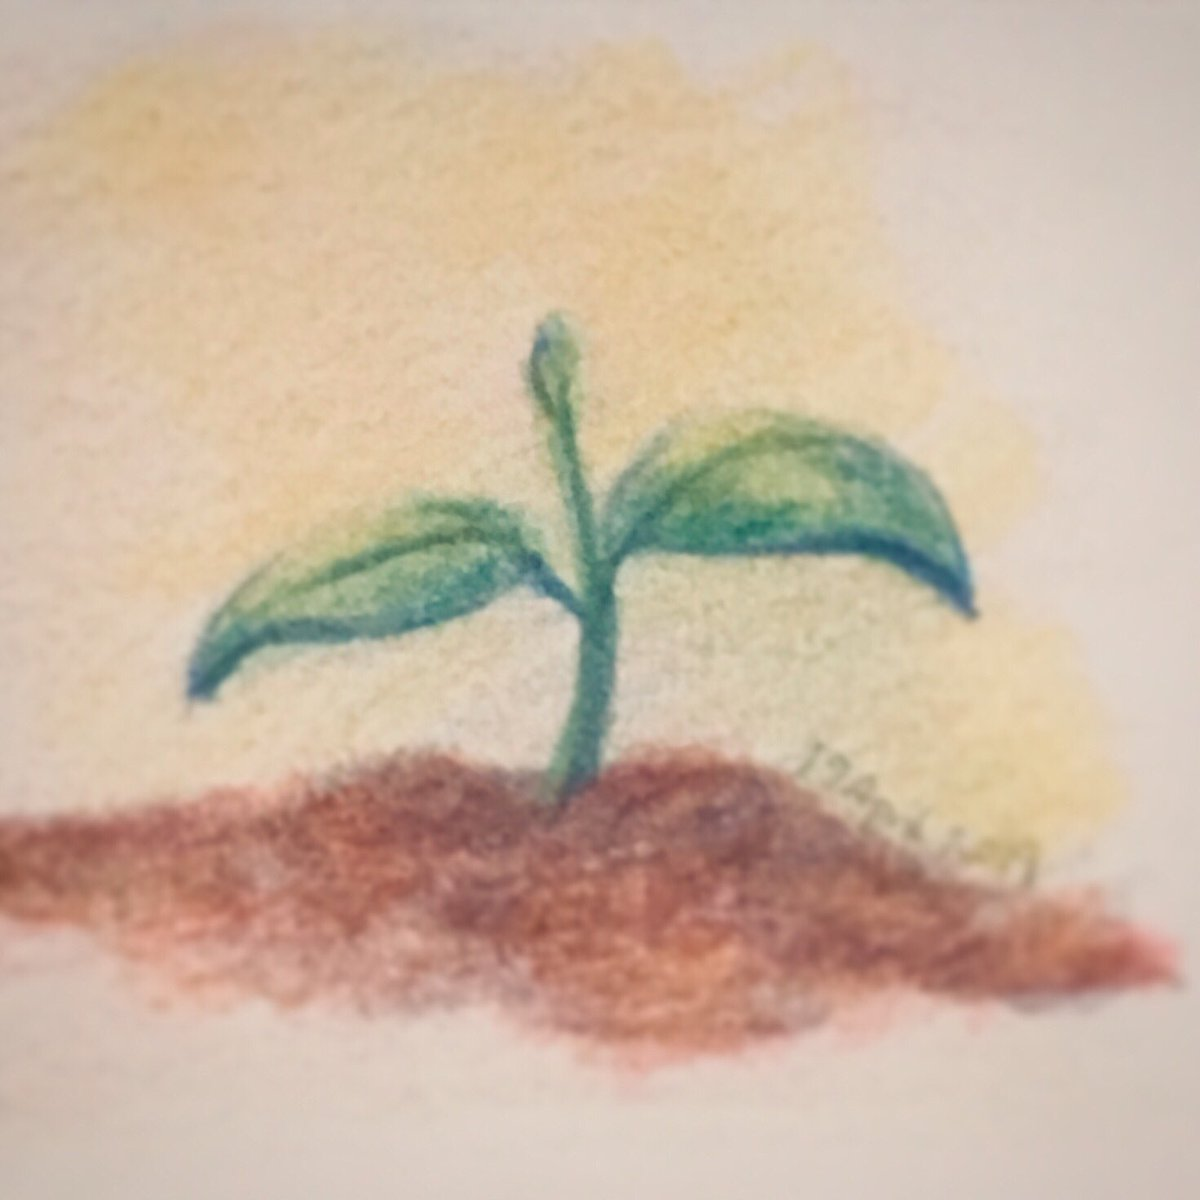 Small little sprout, spreading out for spring #plant #green #pencils #alliteration